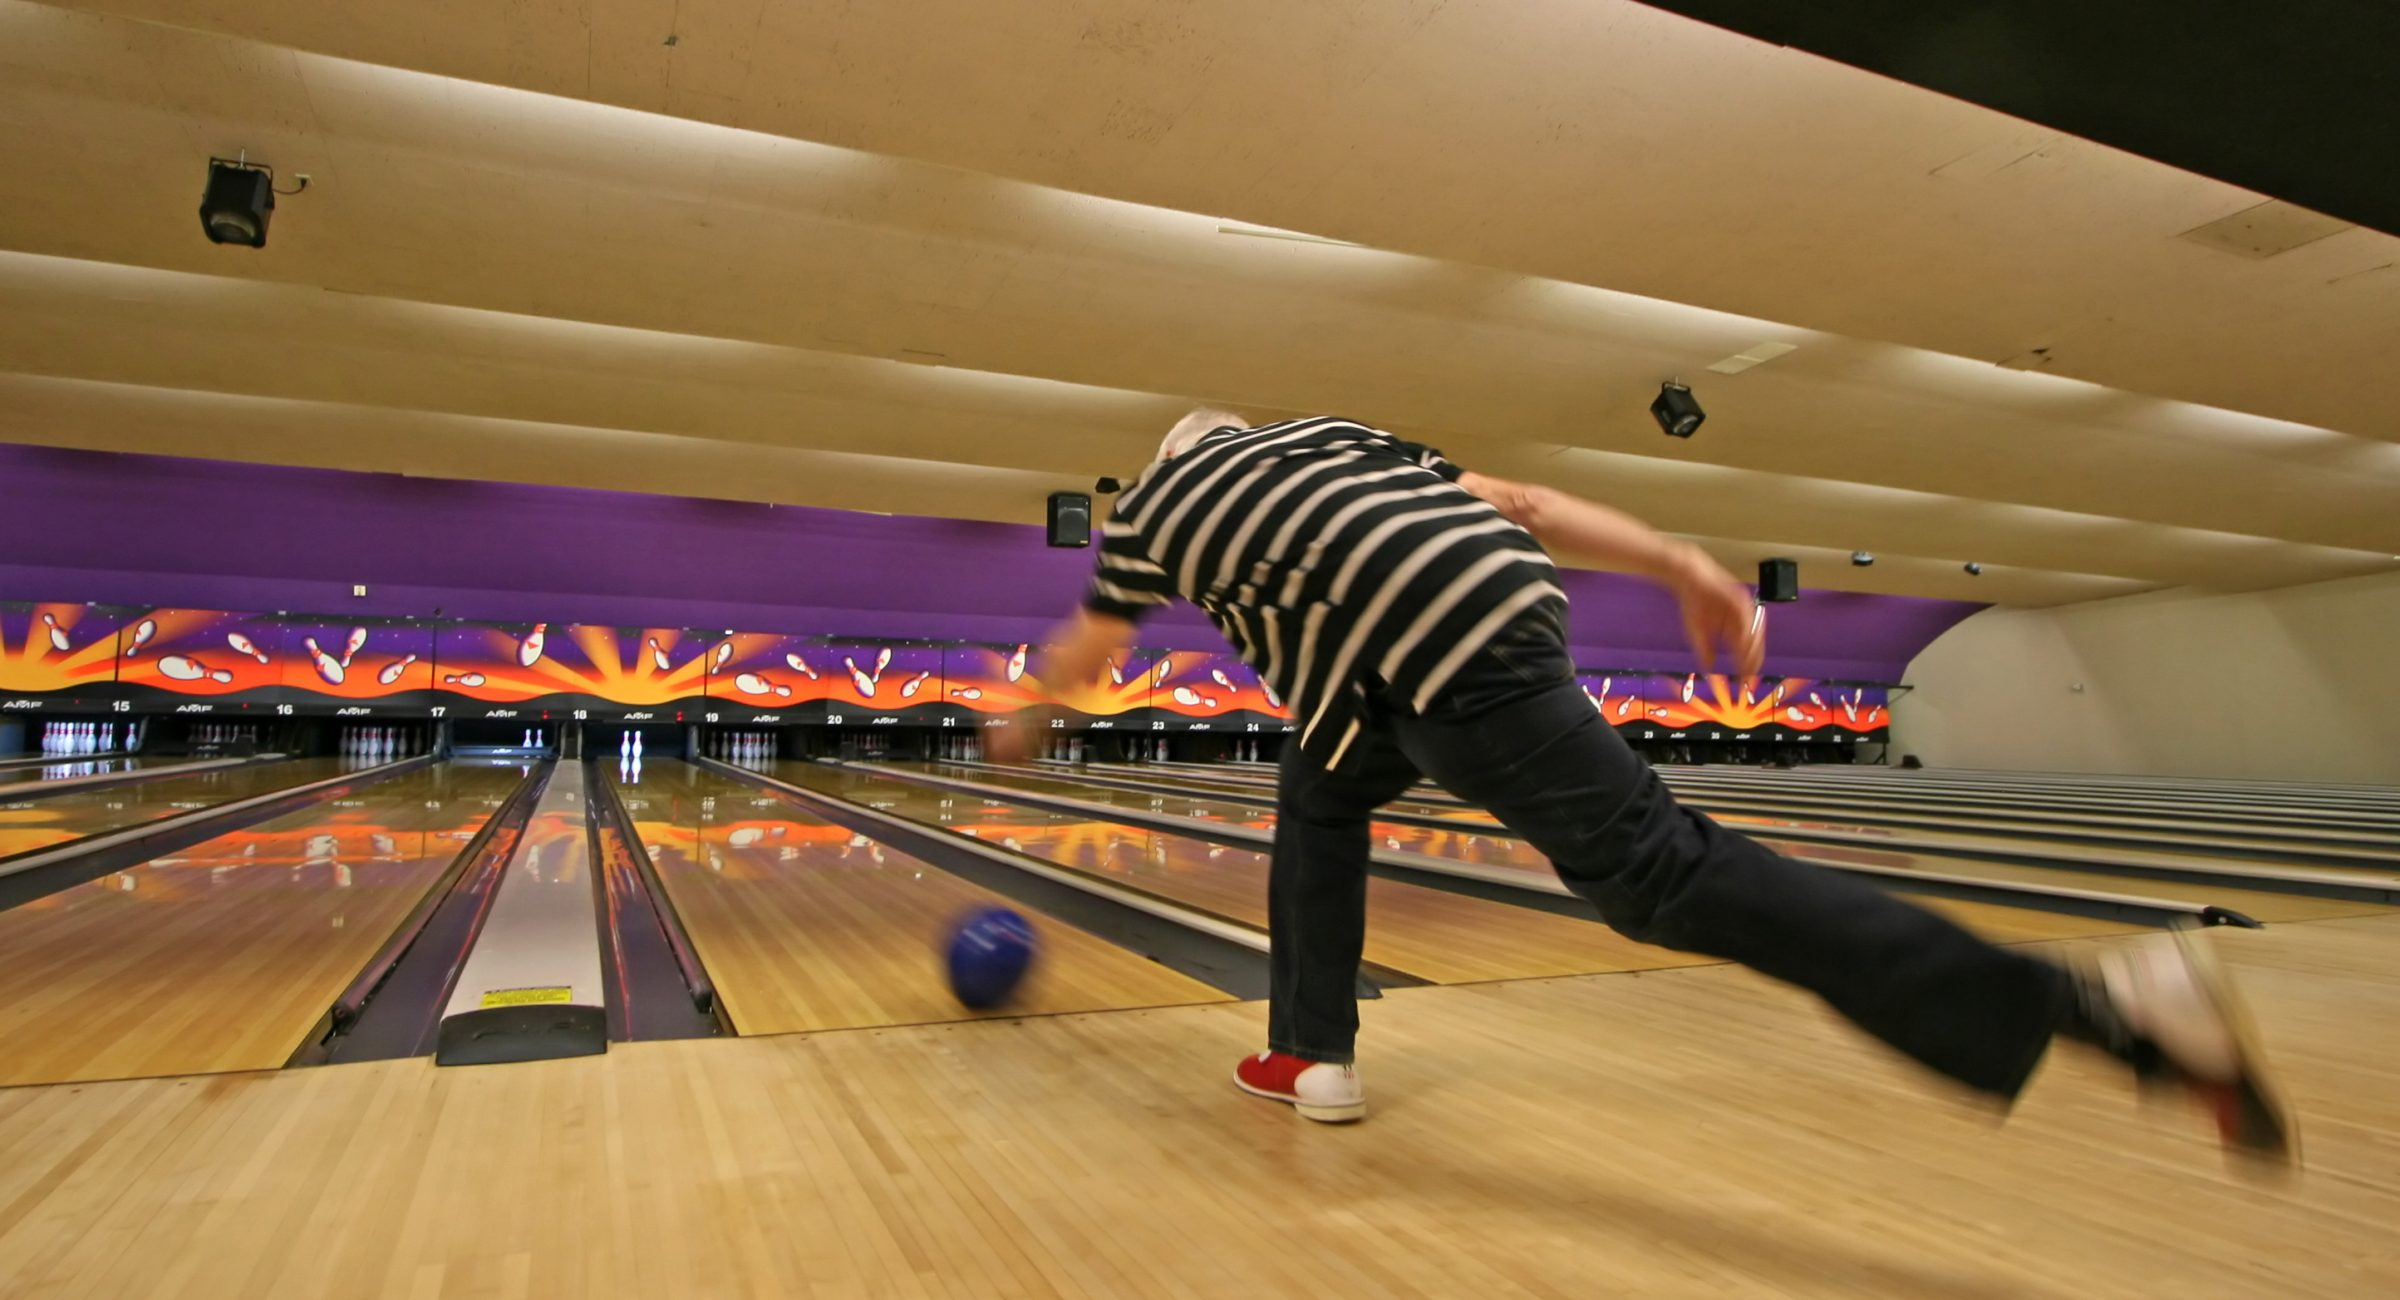 A man who has just thrown his bowling ball